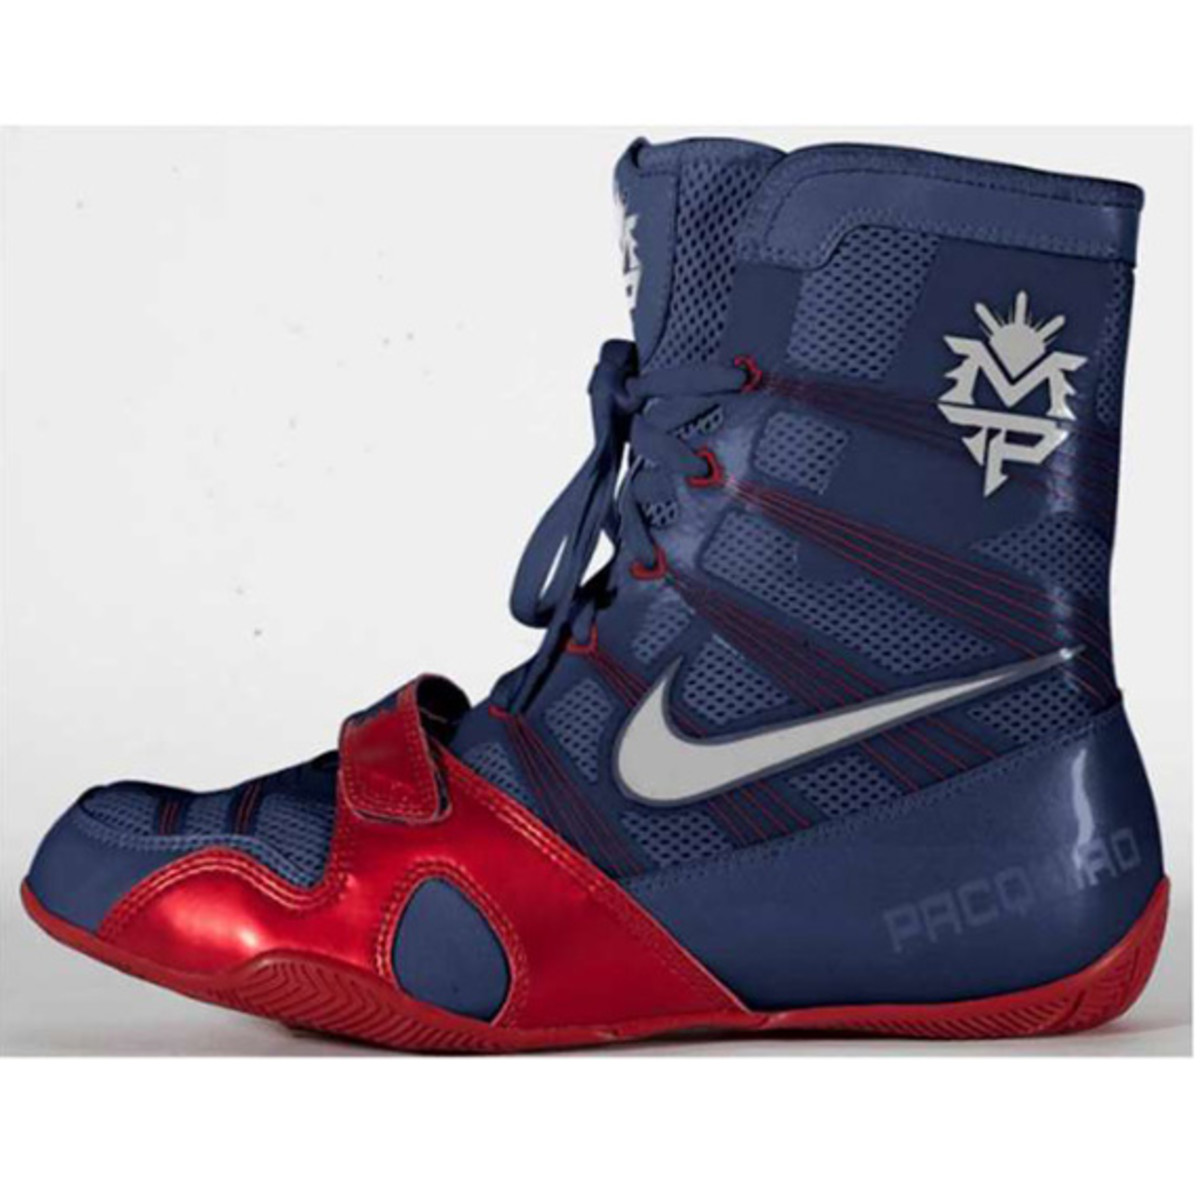 manny-pacquiao-nike-hyperko-mp-boxing-boot-new-colors-03